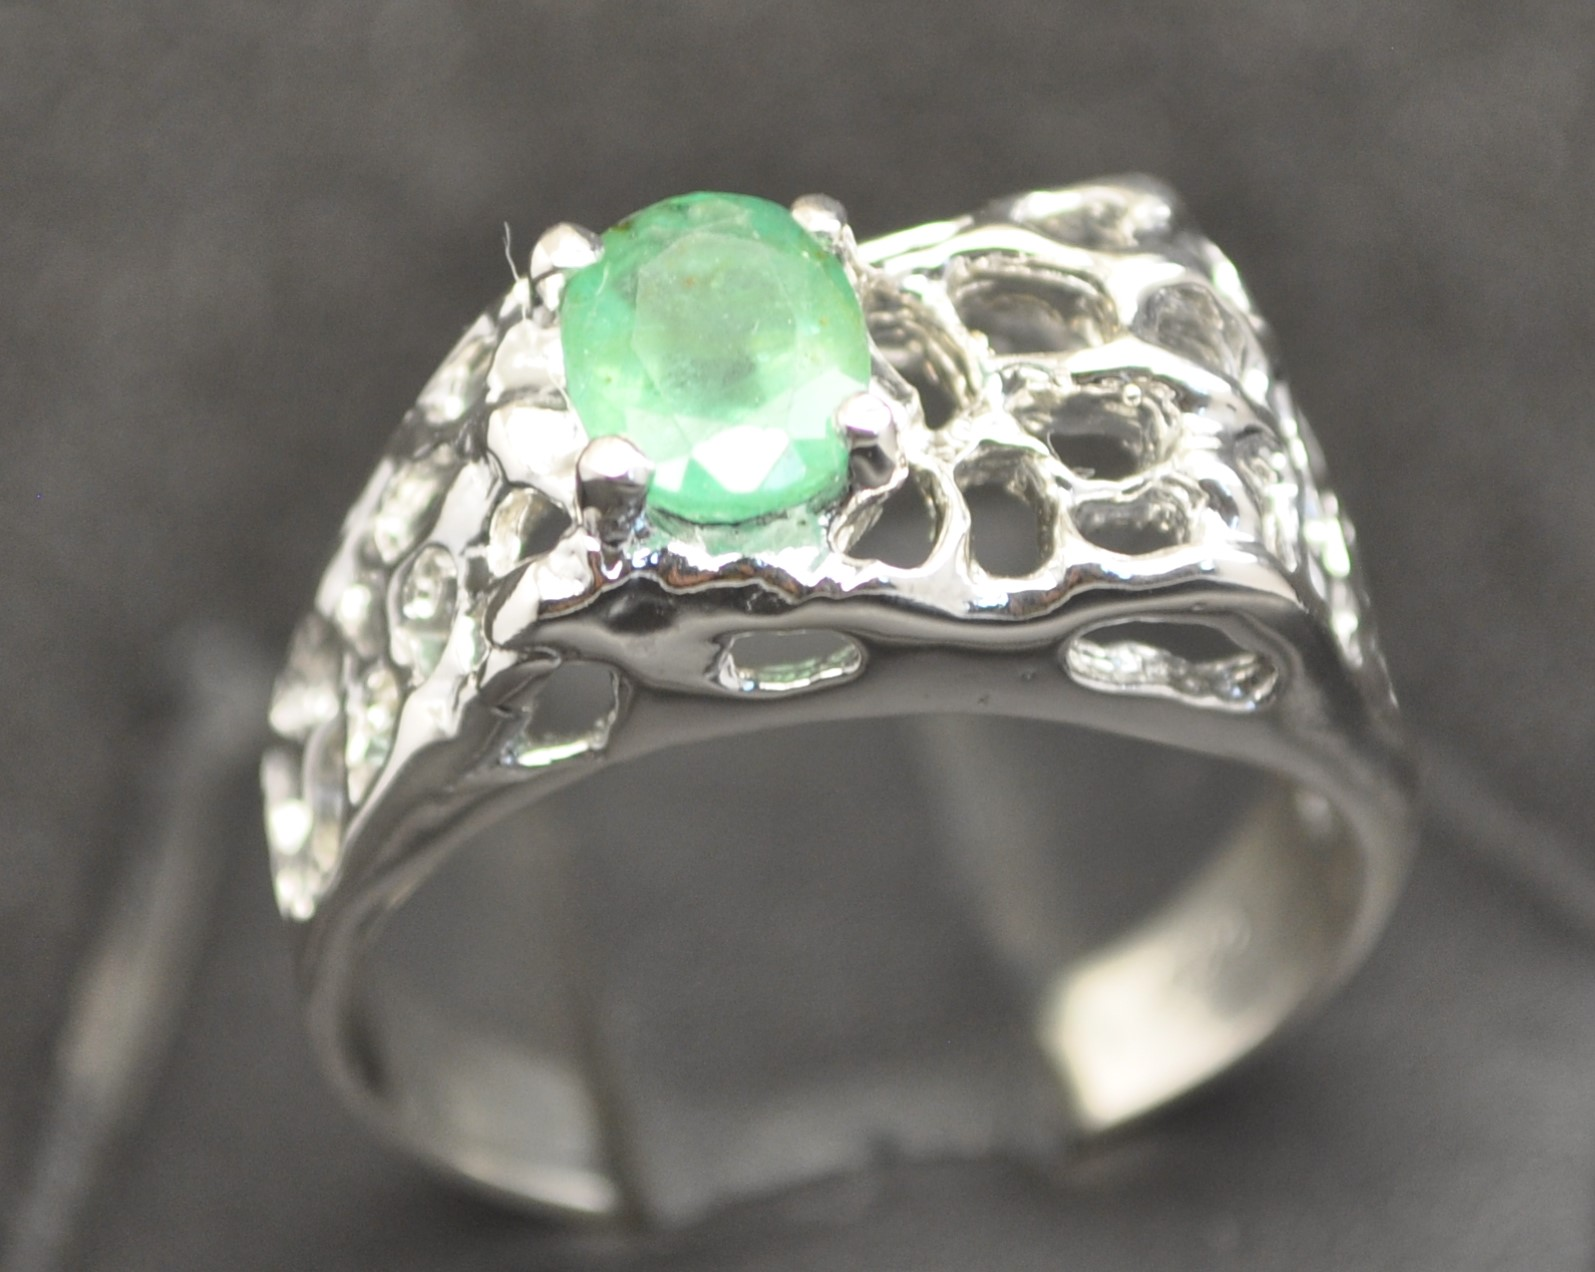 FINE EMERALD STERLING SILVER MENS OPEN NUGGET RING